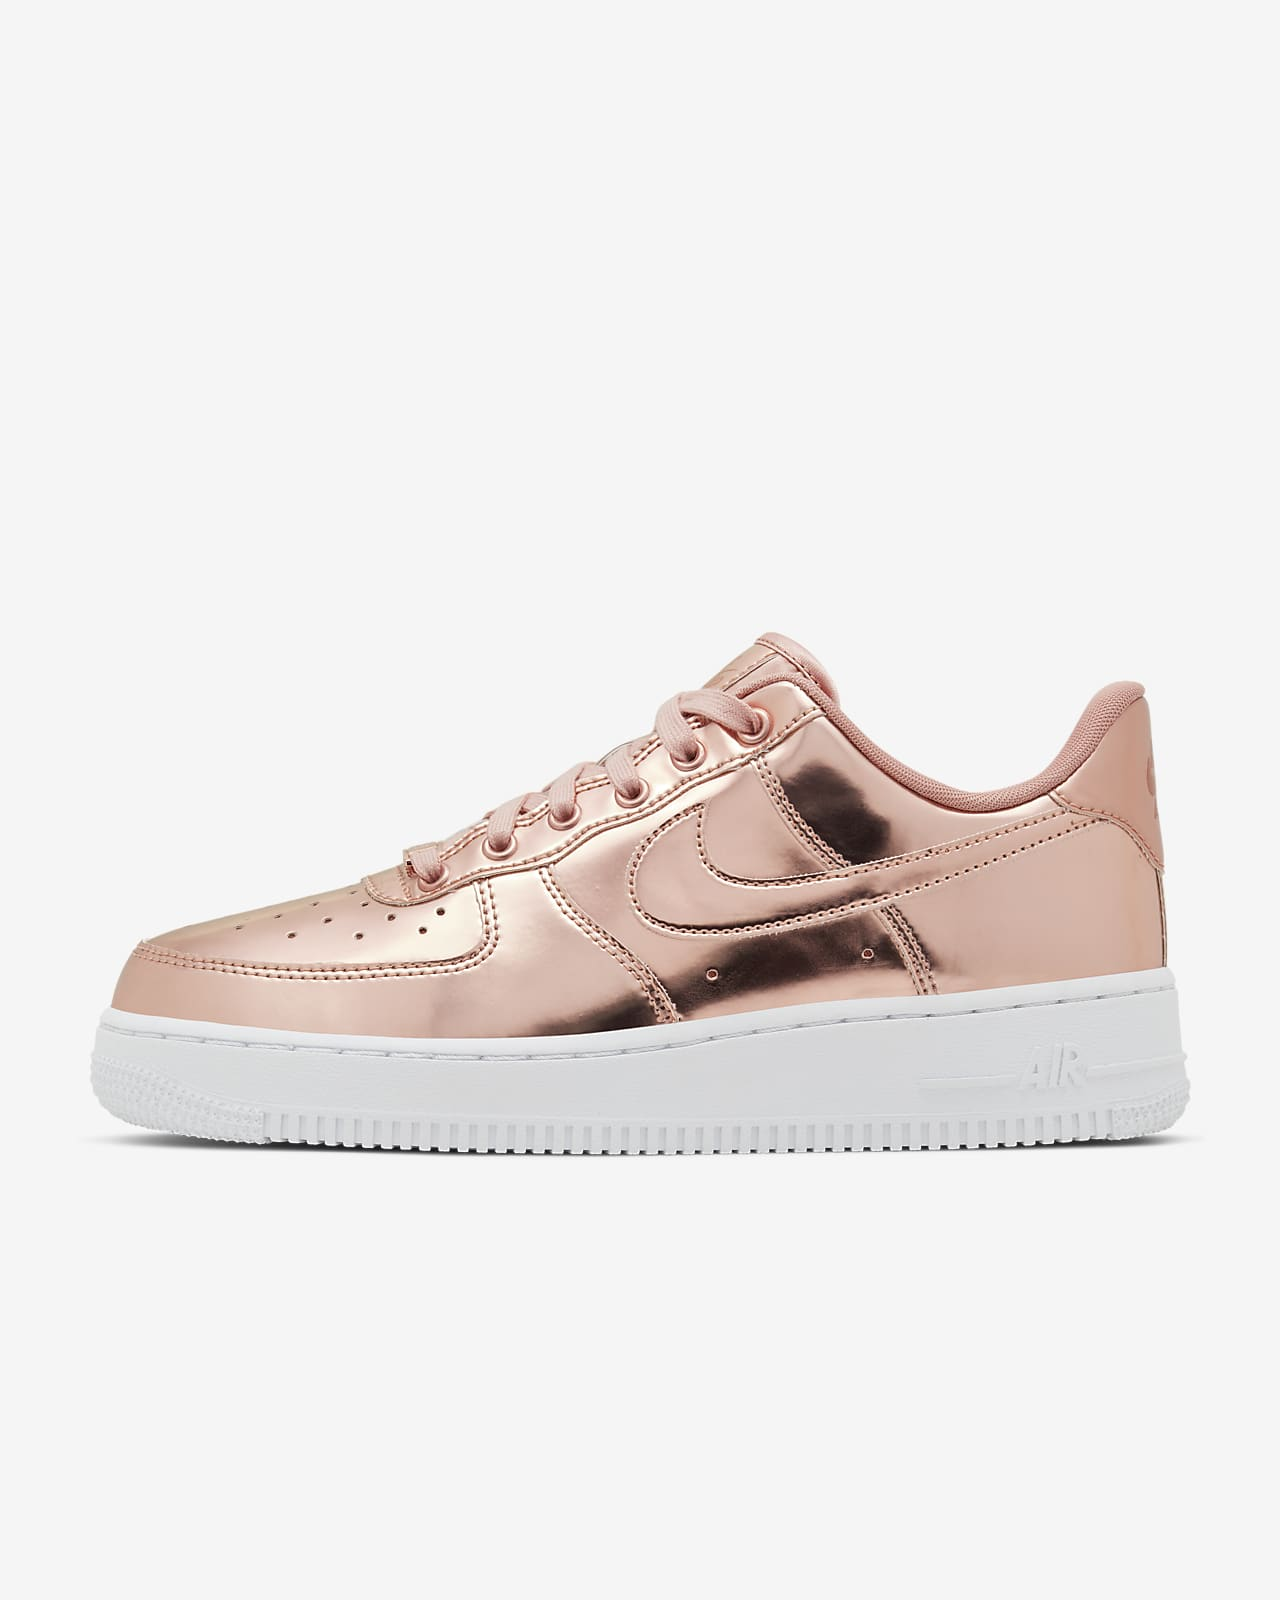 Nike Air Force 1 SP Women's Shoe